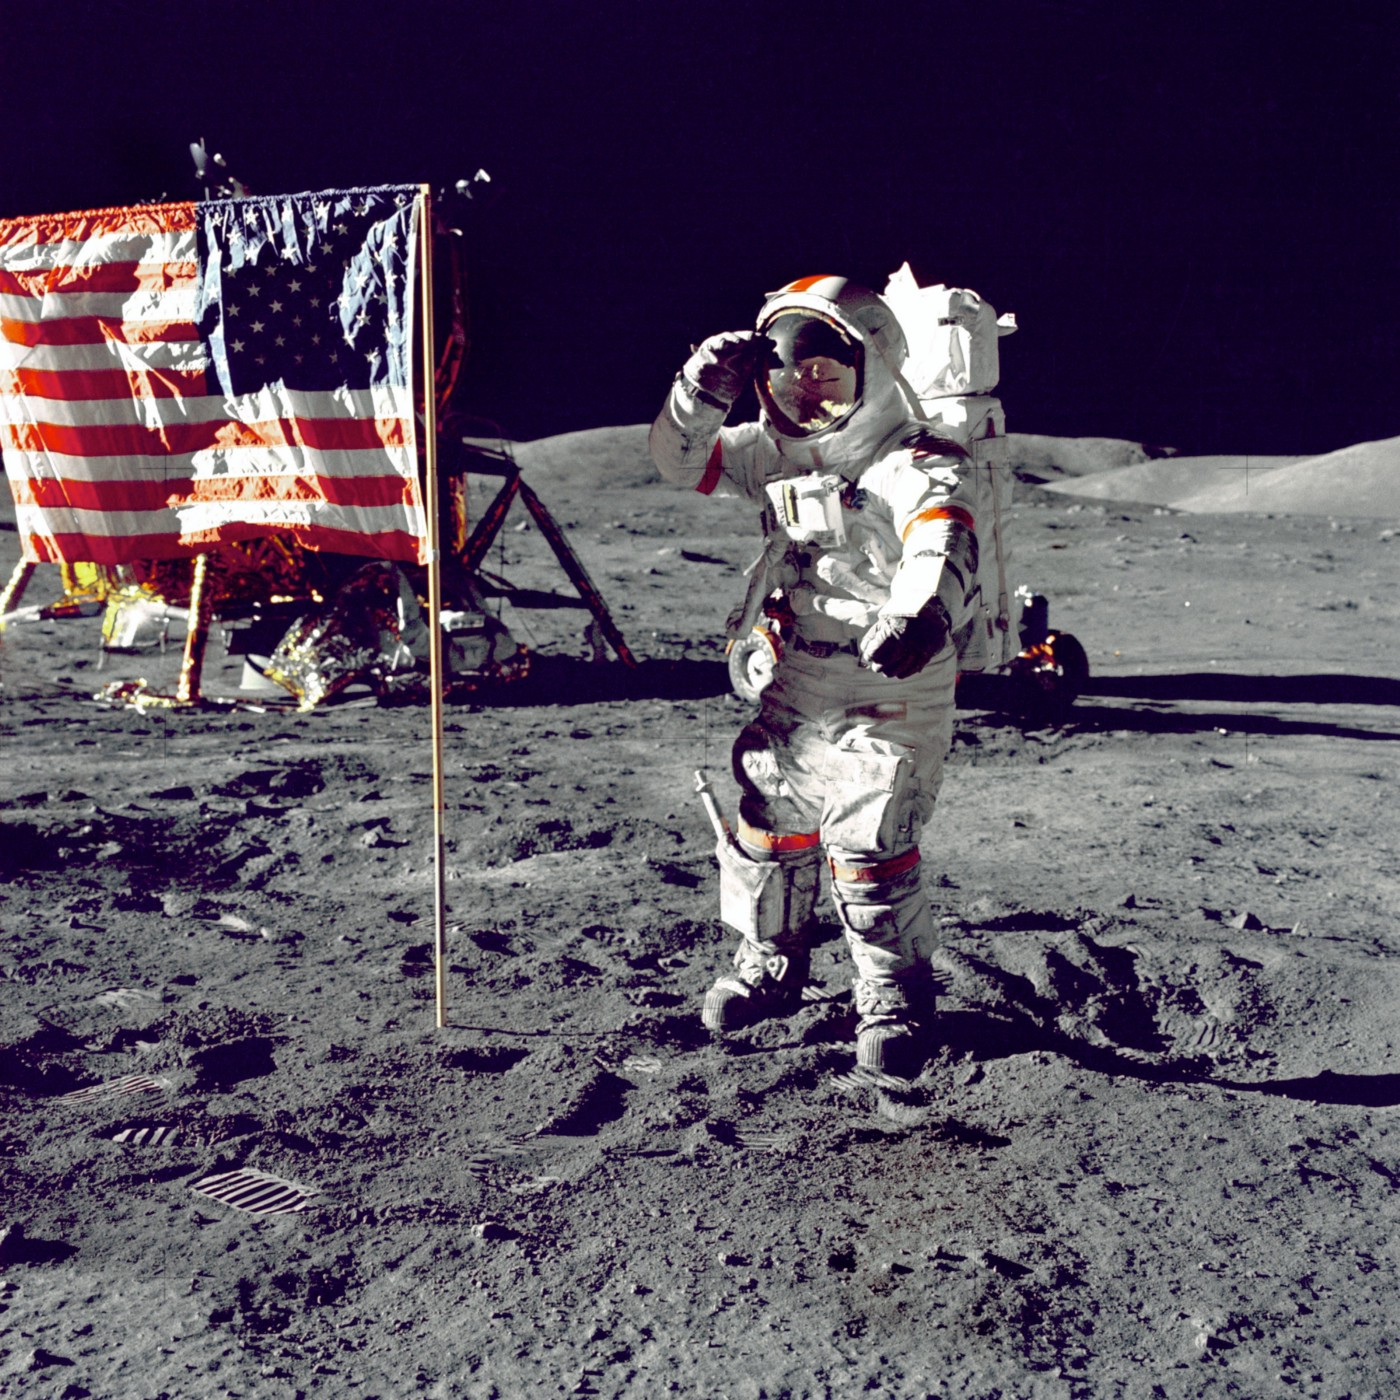 America that is not your moon, space, exploration, casey lane, NASA, treaty, space force, medium, entitlement, universe, perpetuity, capitalism